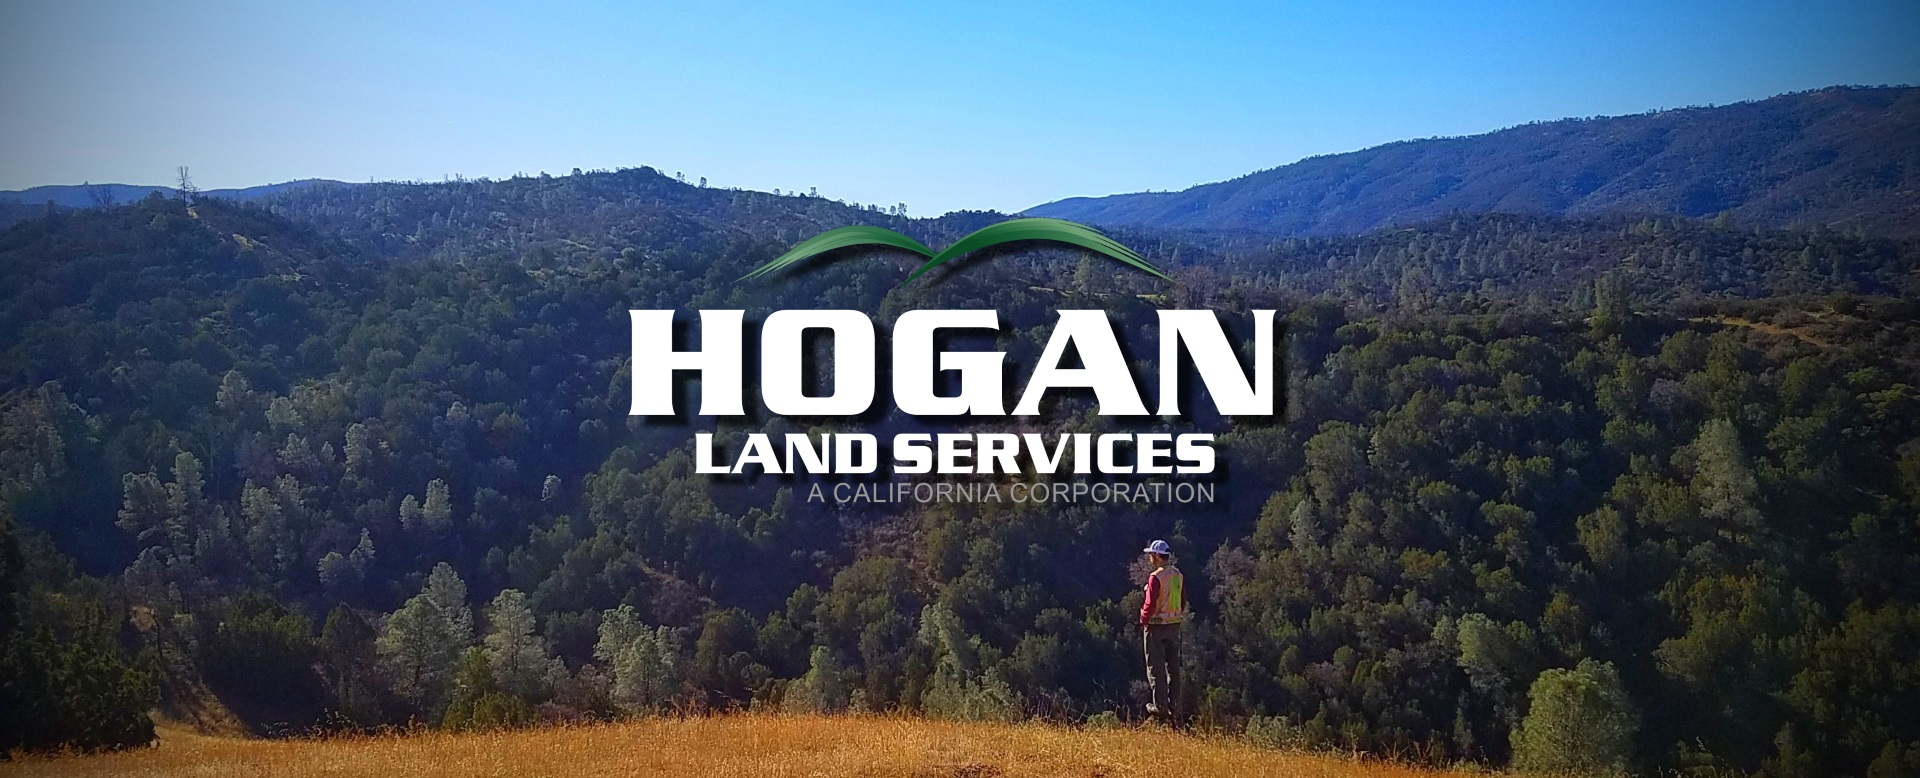 Hogan Land Services Civil | Structural | Septic | Survey | Planning | Permit Assistance | Violation Resolution California